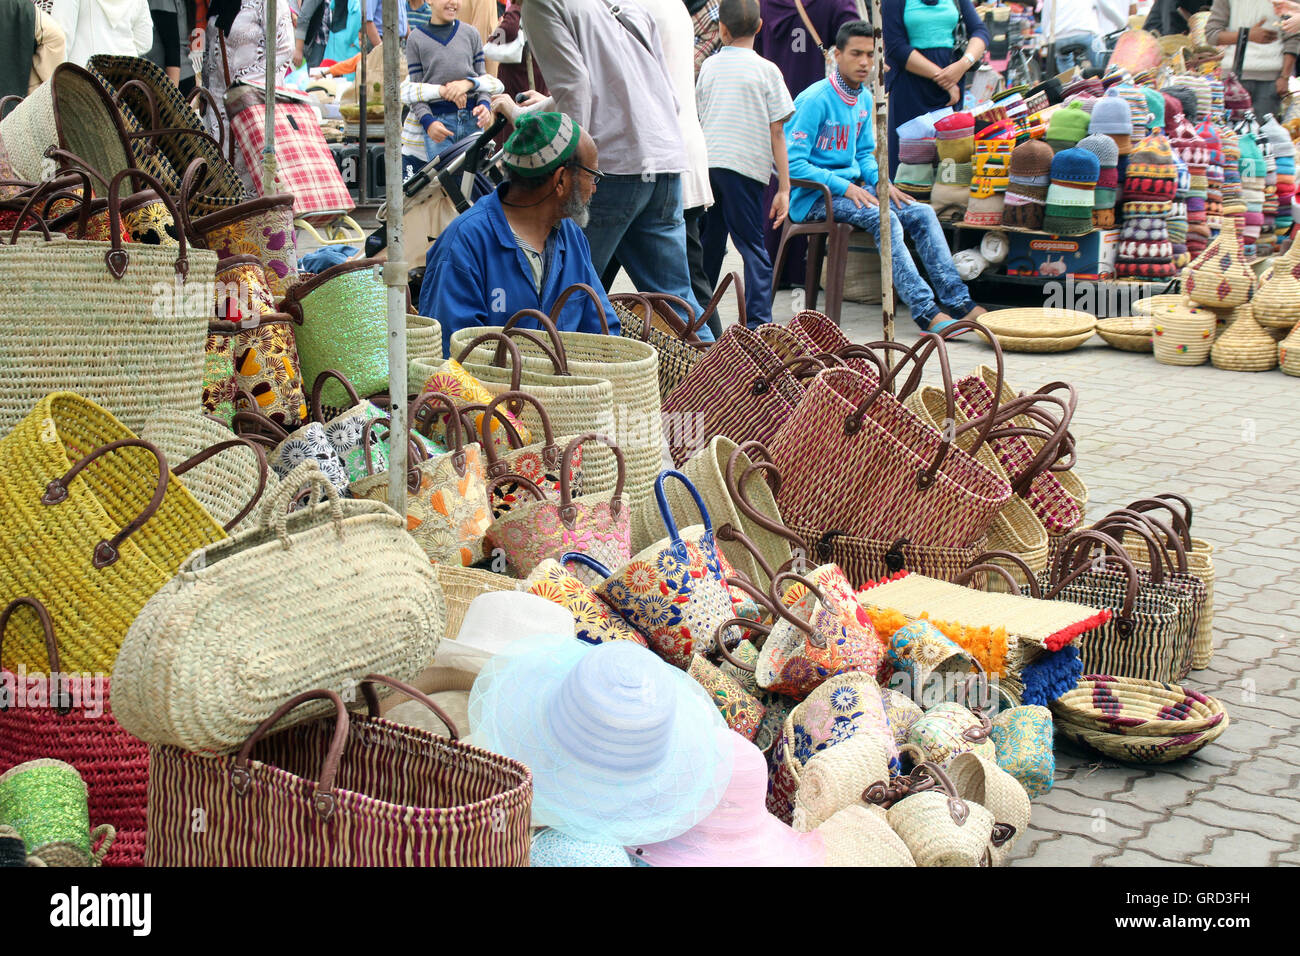 Classically Market At Marocco - Stock Image